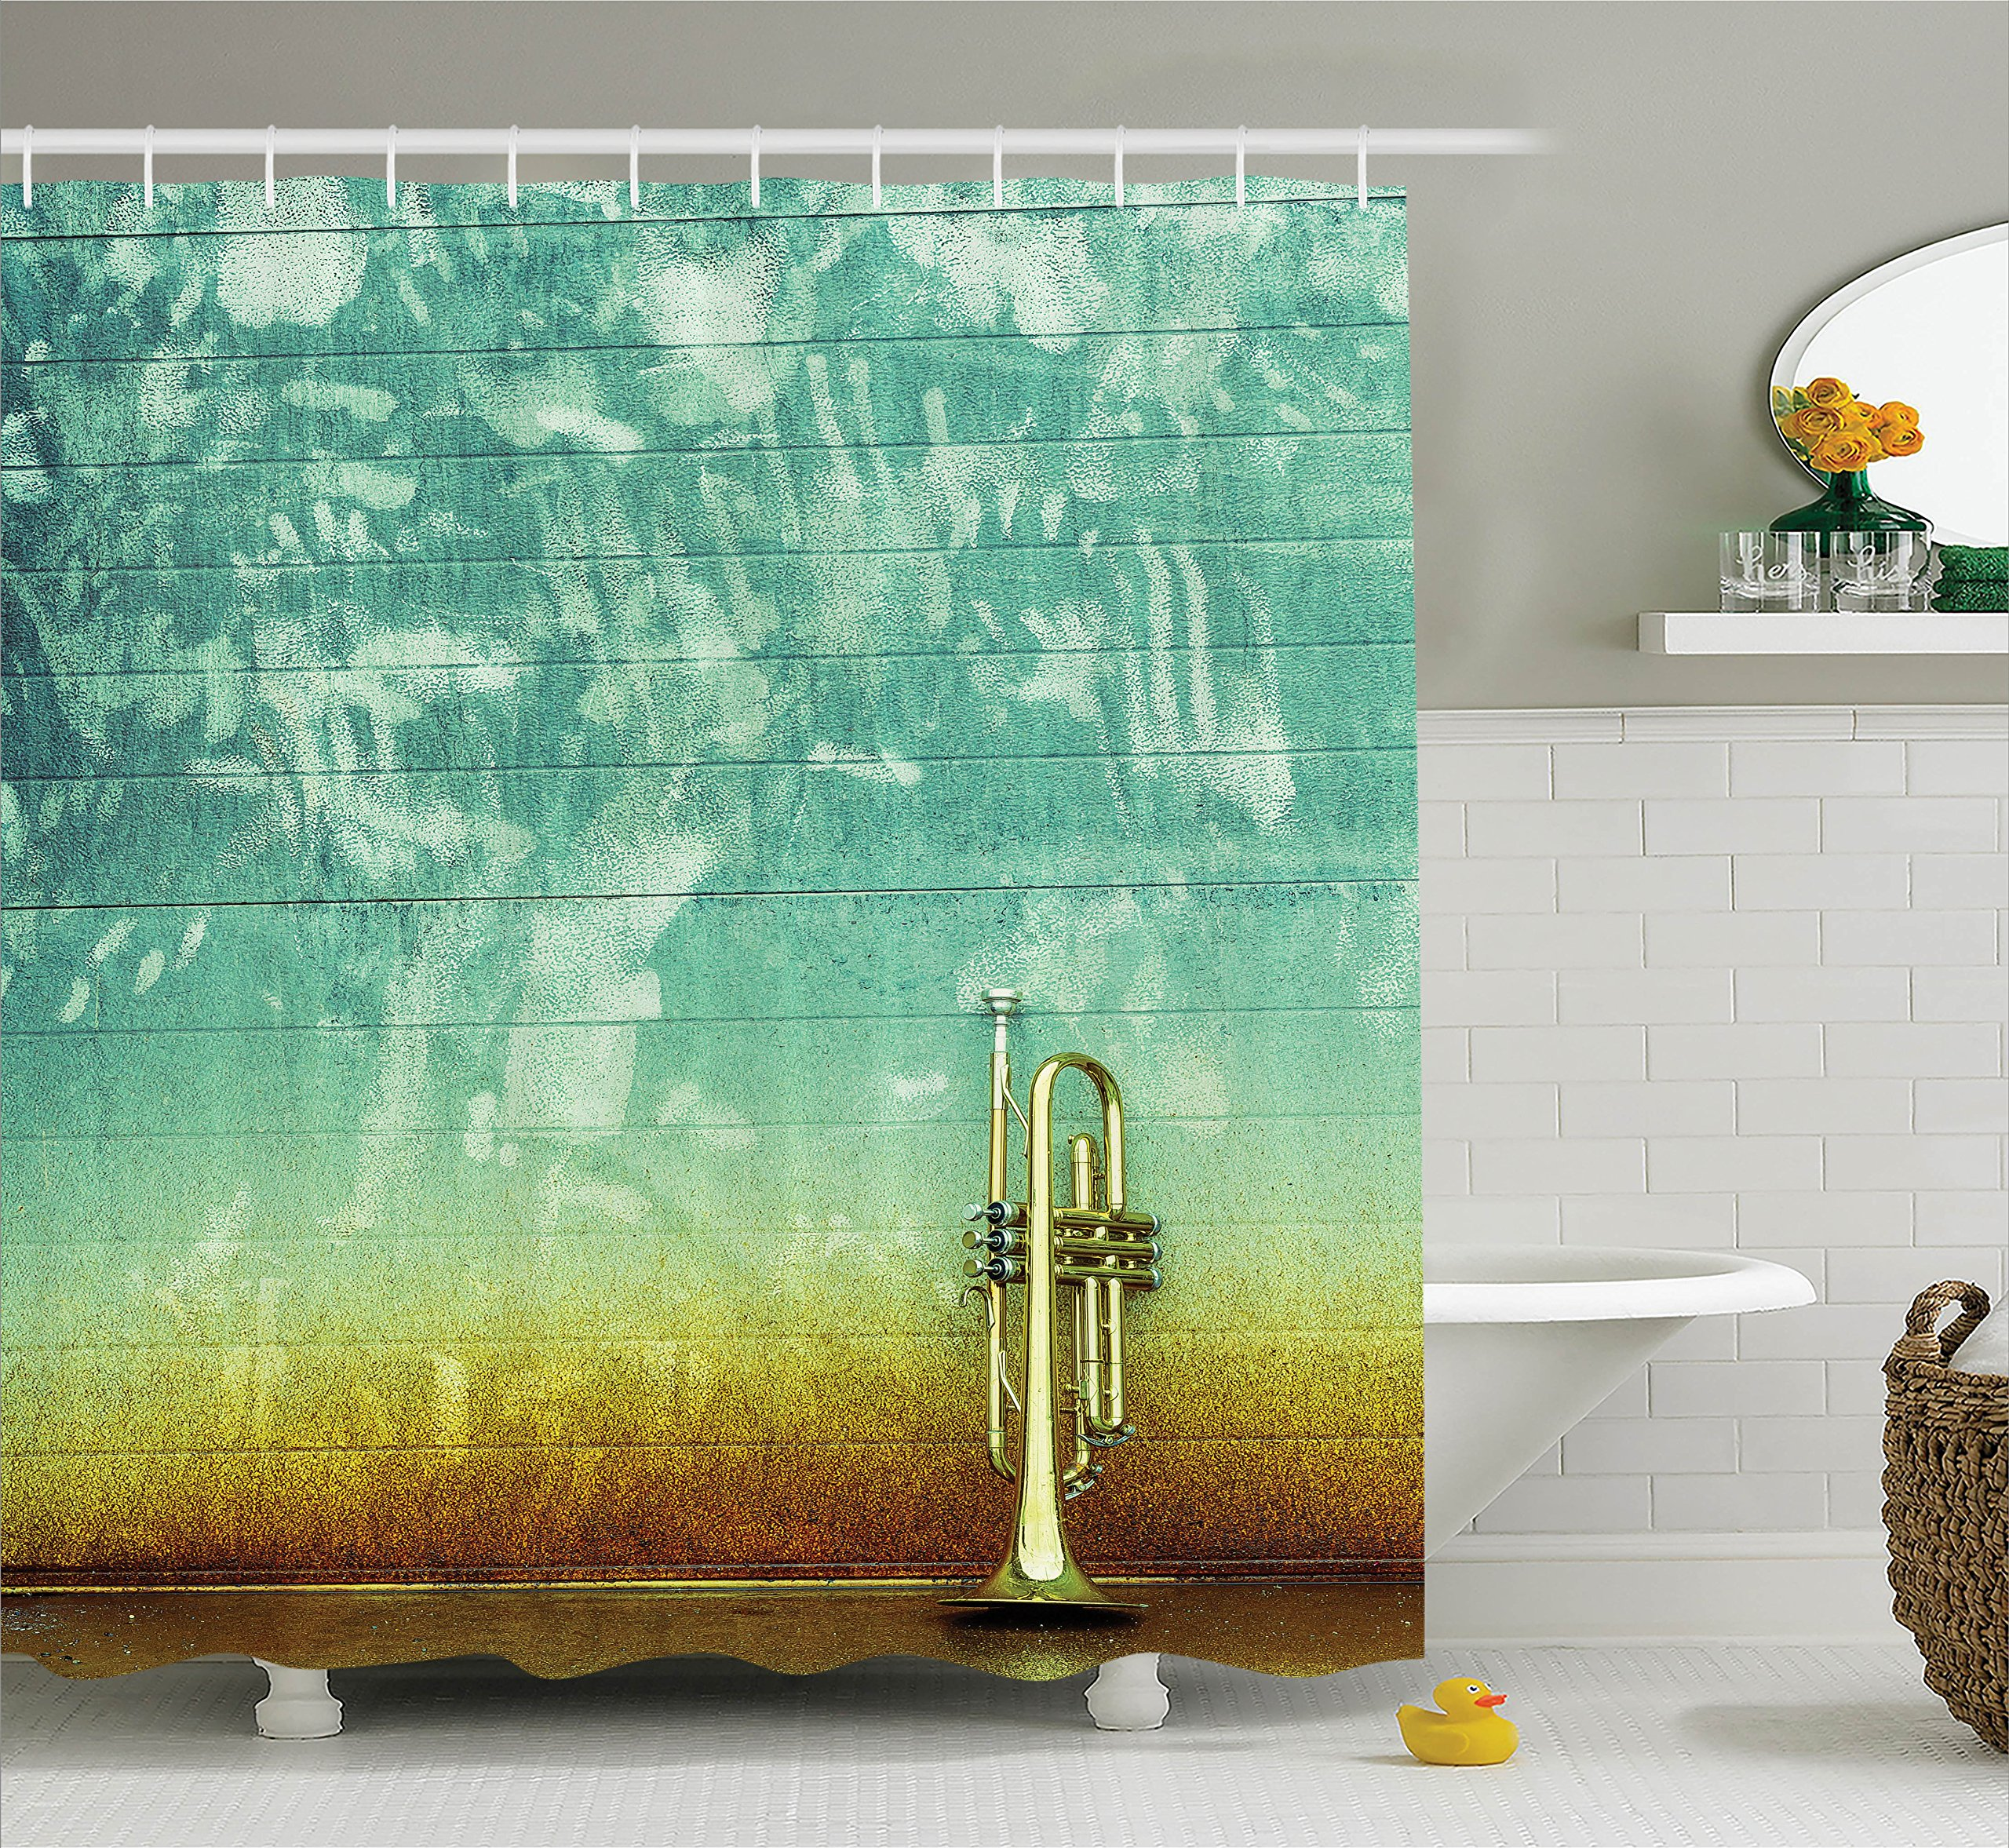 Ambesonne Music Decor Shower Curtain Set, Old Aged Worn Single Trumpet Stands Alone Against a Faded Wall Jazz Music Theme Photo, Bathroom Accessories, 84 inches Extralong, Sea Green Brown